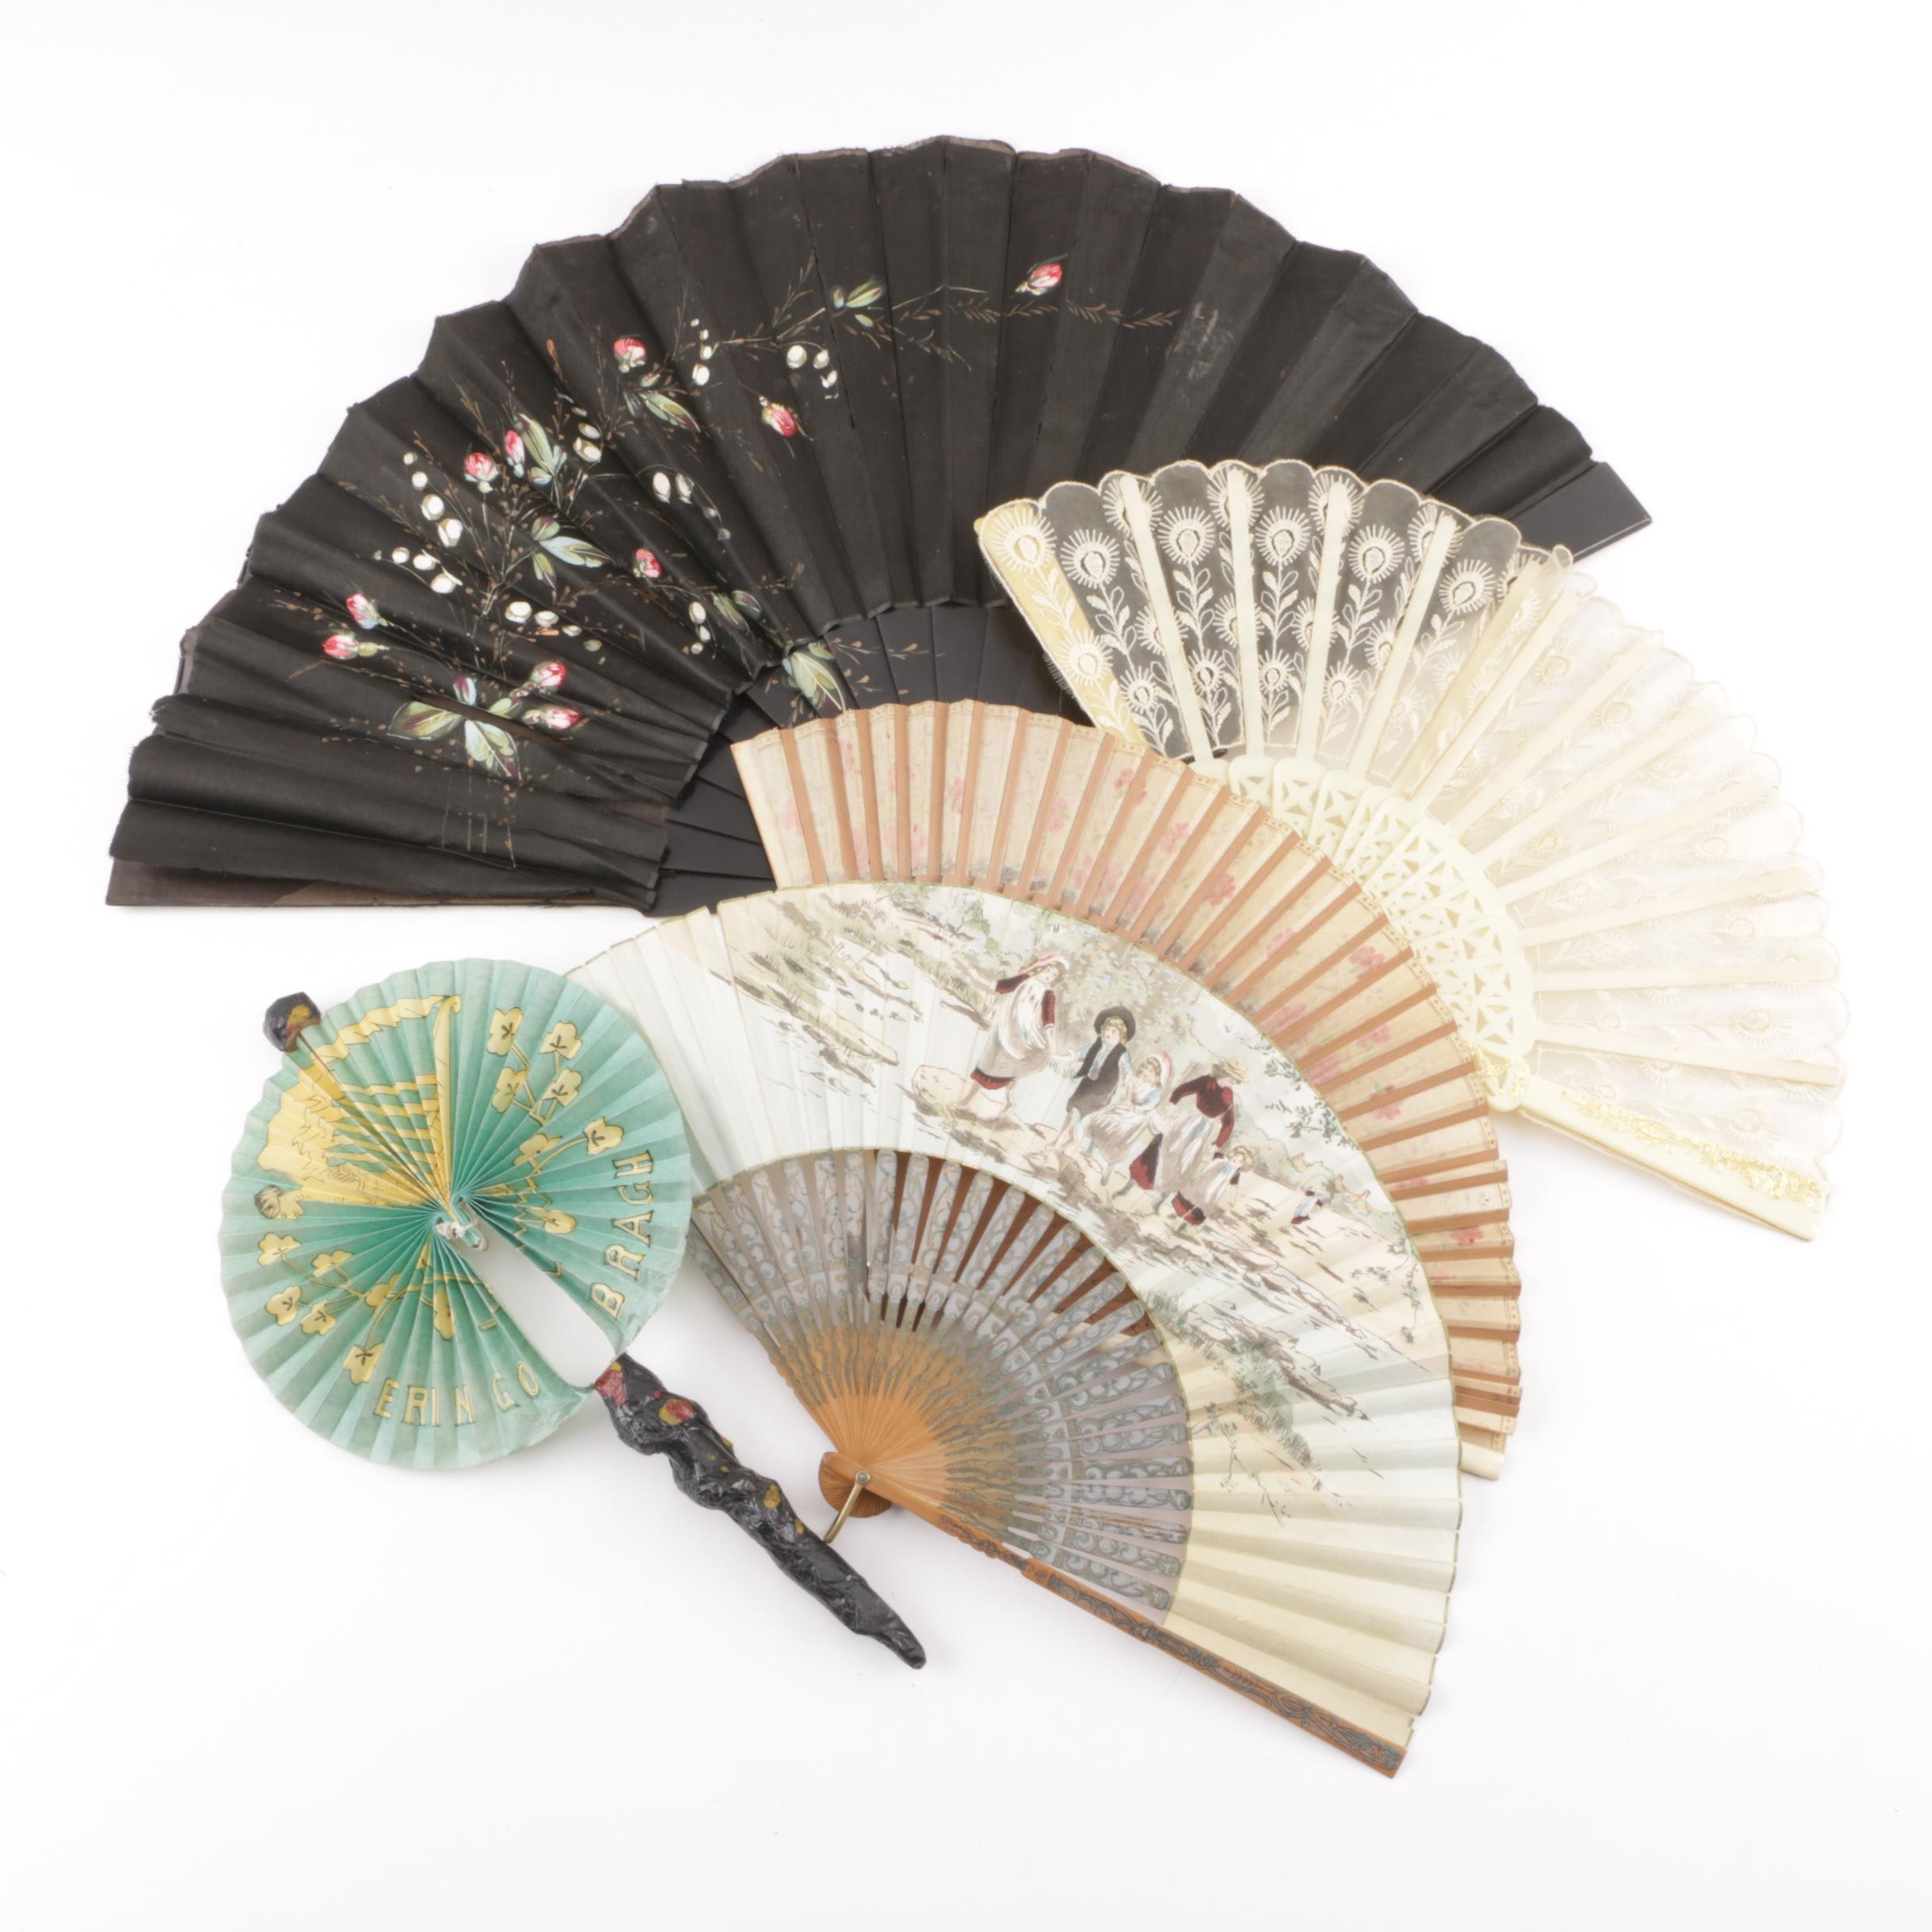 Vintage Hand-Painted, Papier-Mâché and Lace Folding Hand Fans